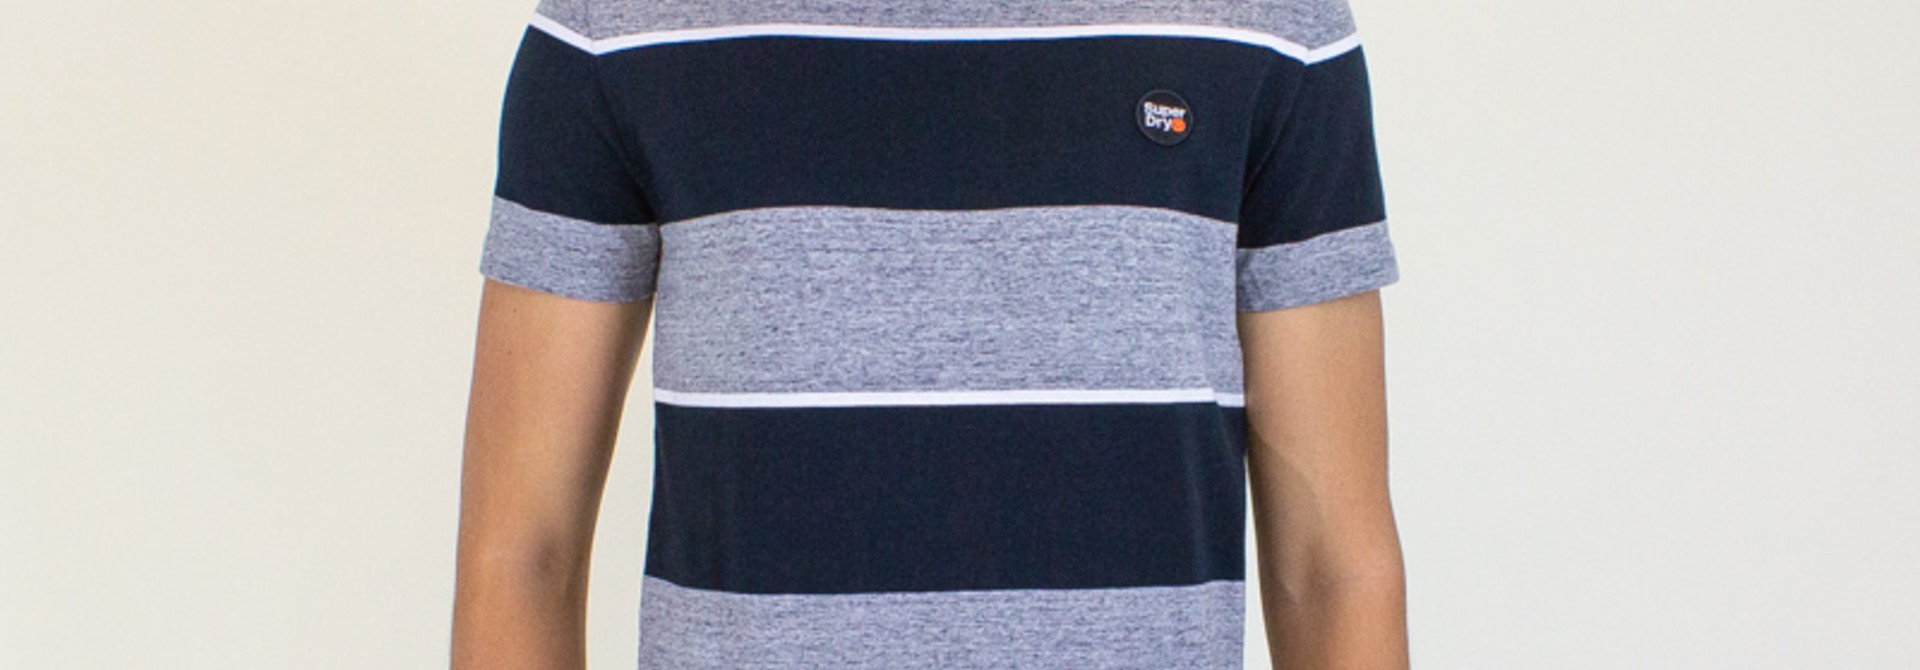 Superdry Collective Stripe Tee - Collective